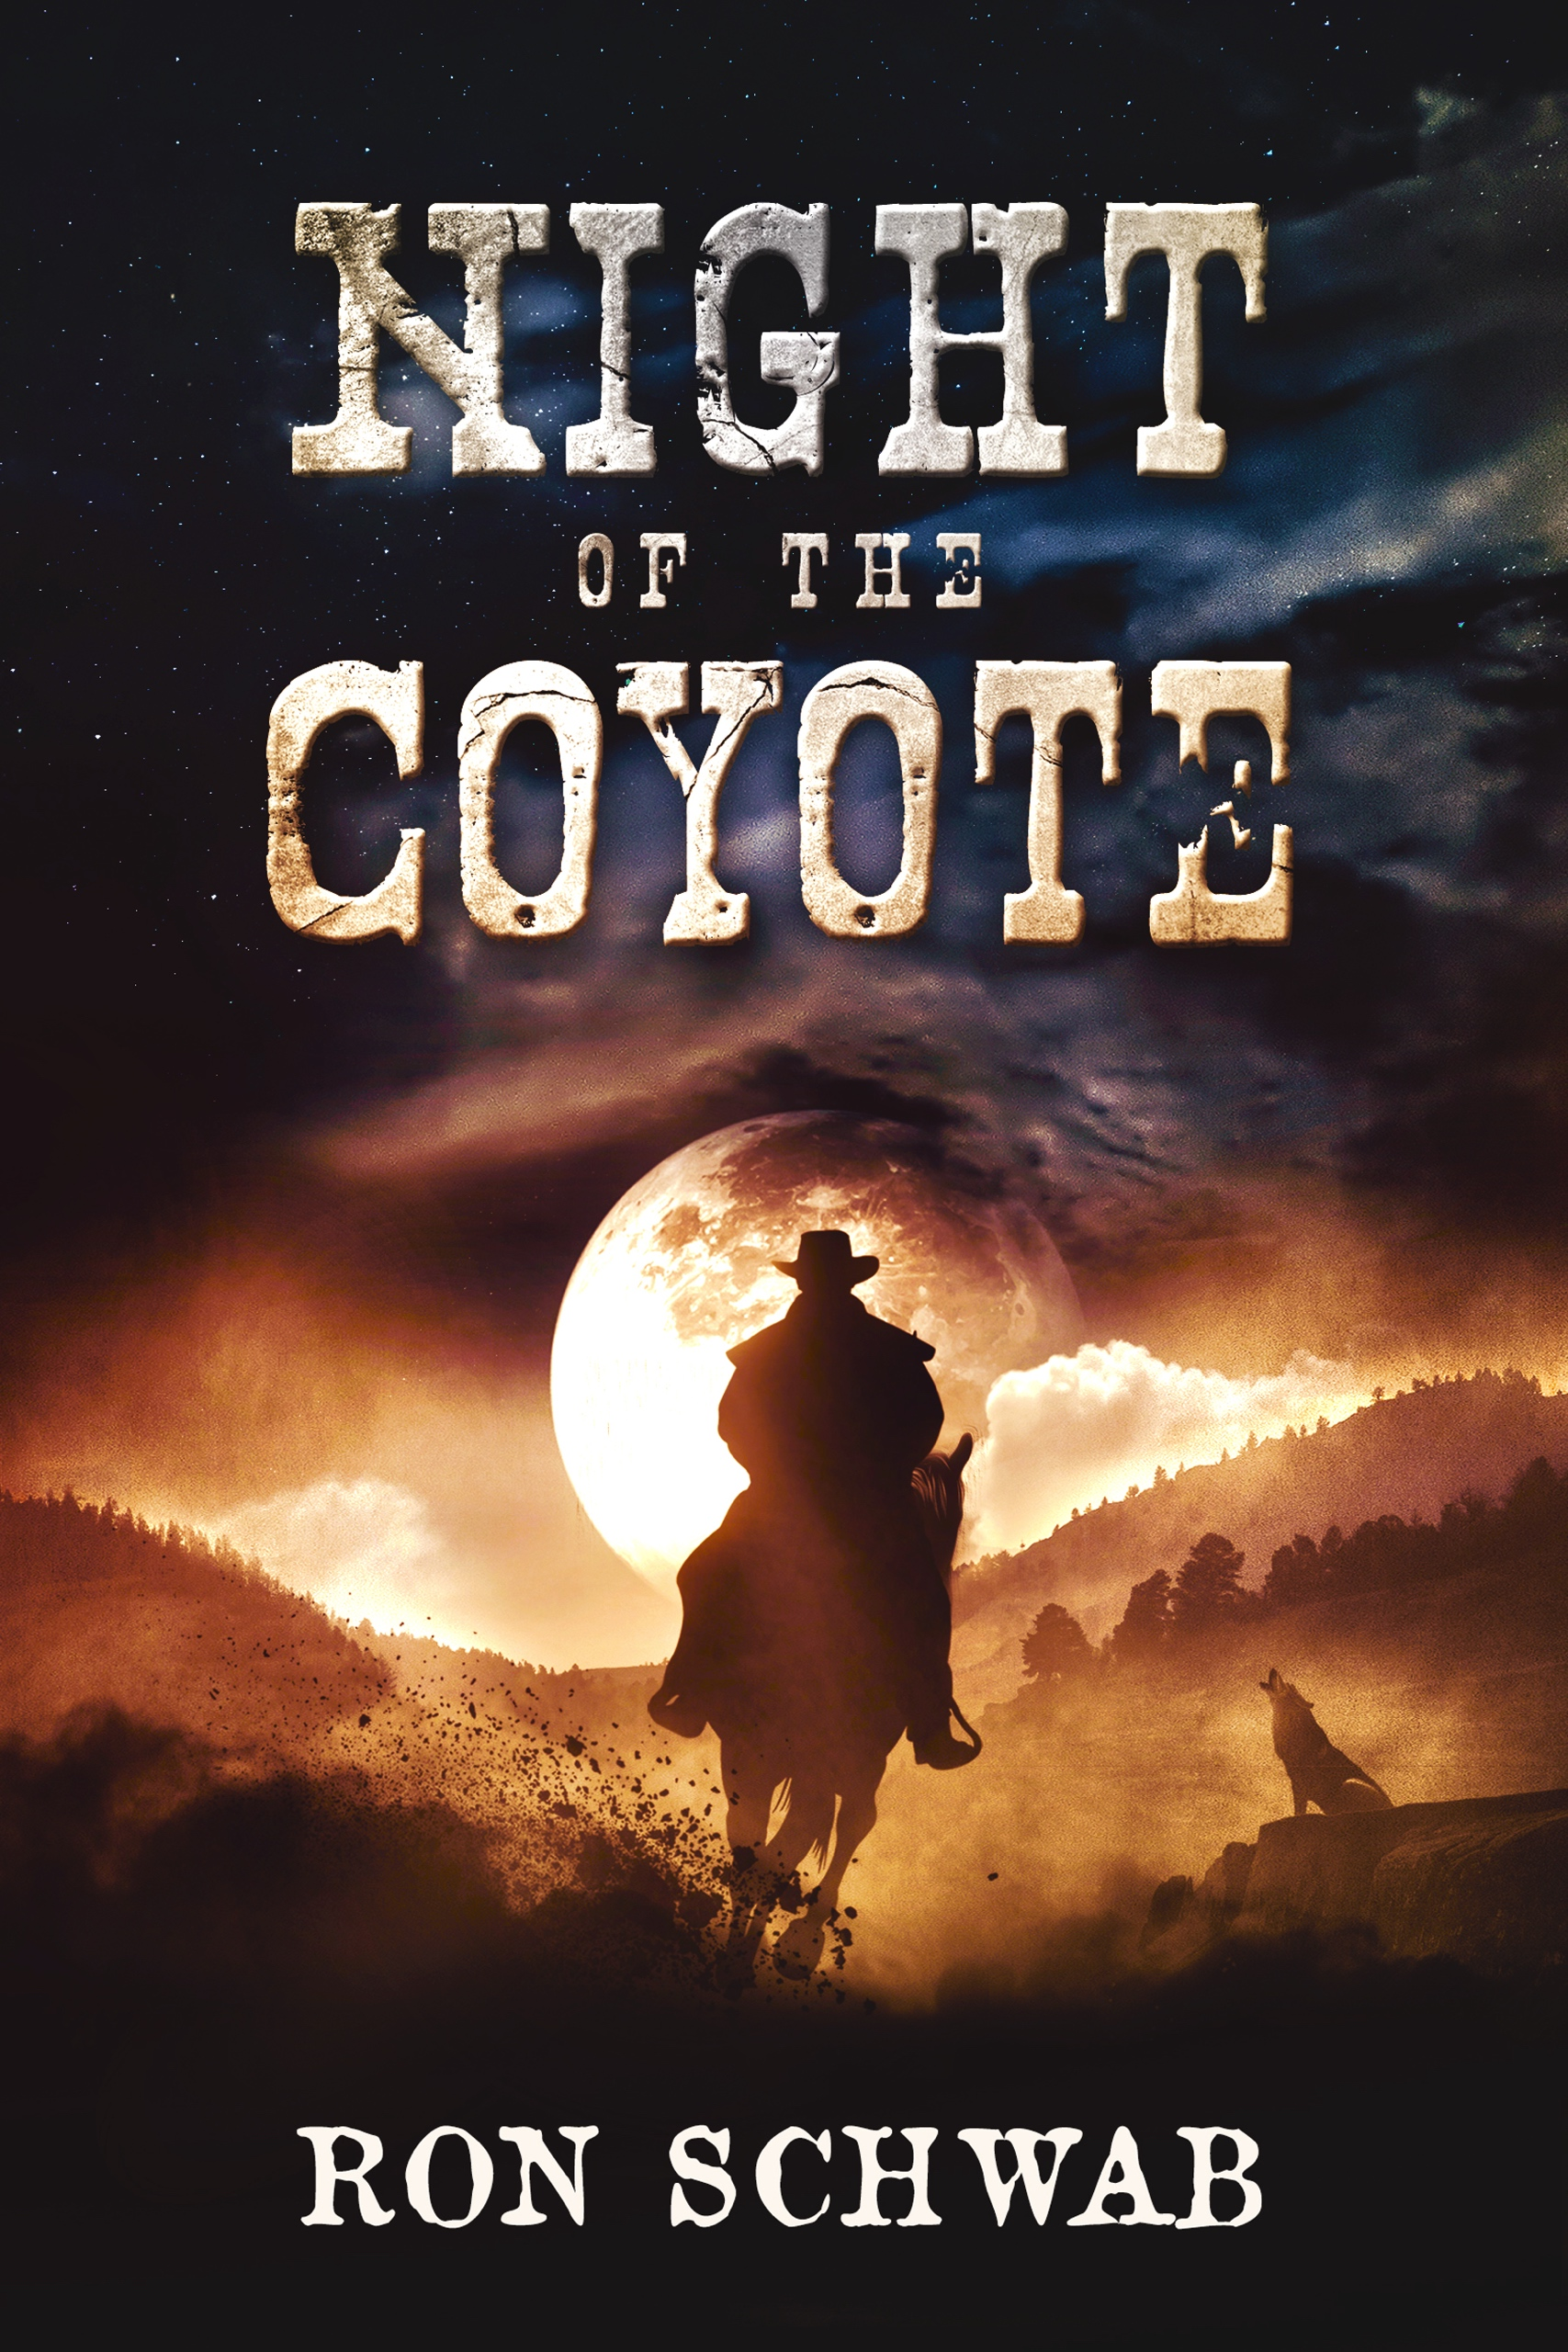 Night-of-the-Coyote-Kindle.jpg